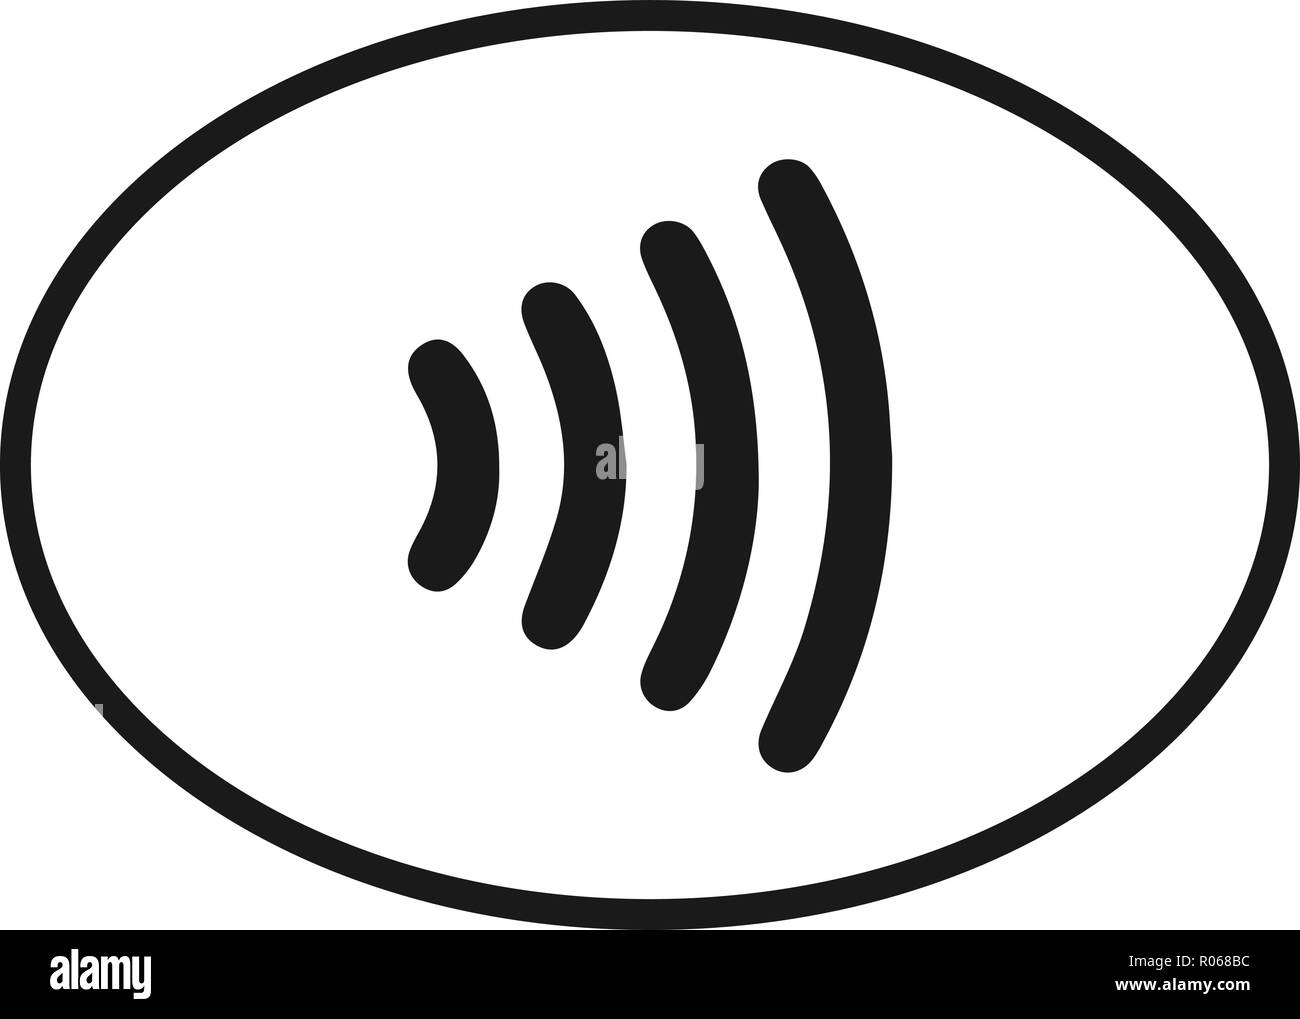 nfc-contact-less-wireless-pay-icon-R068B